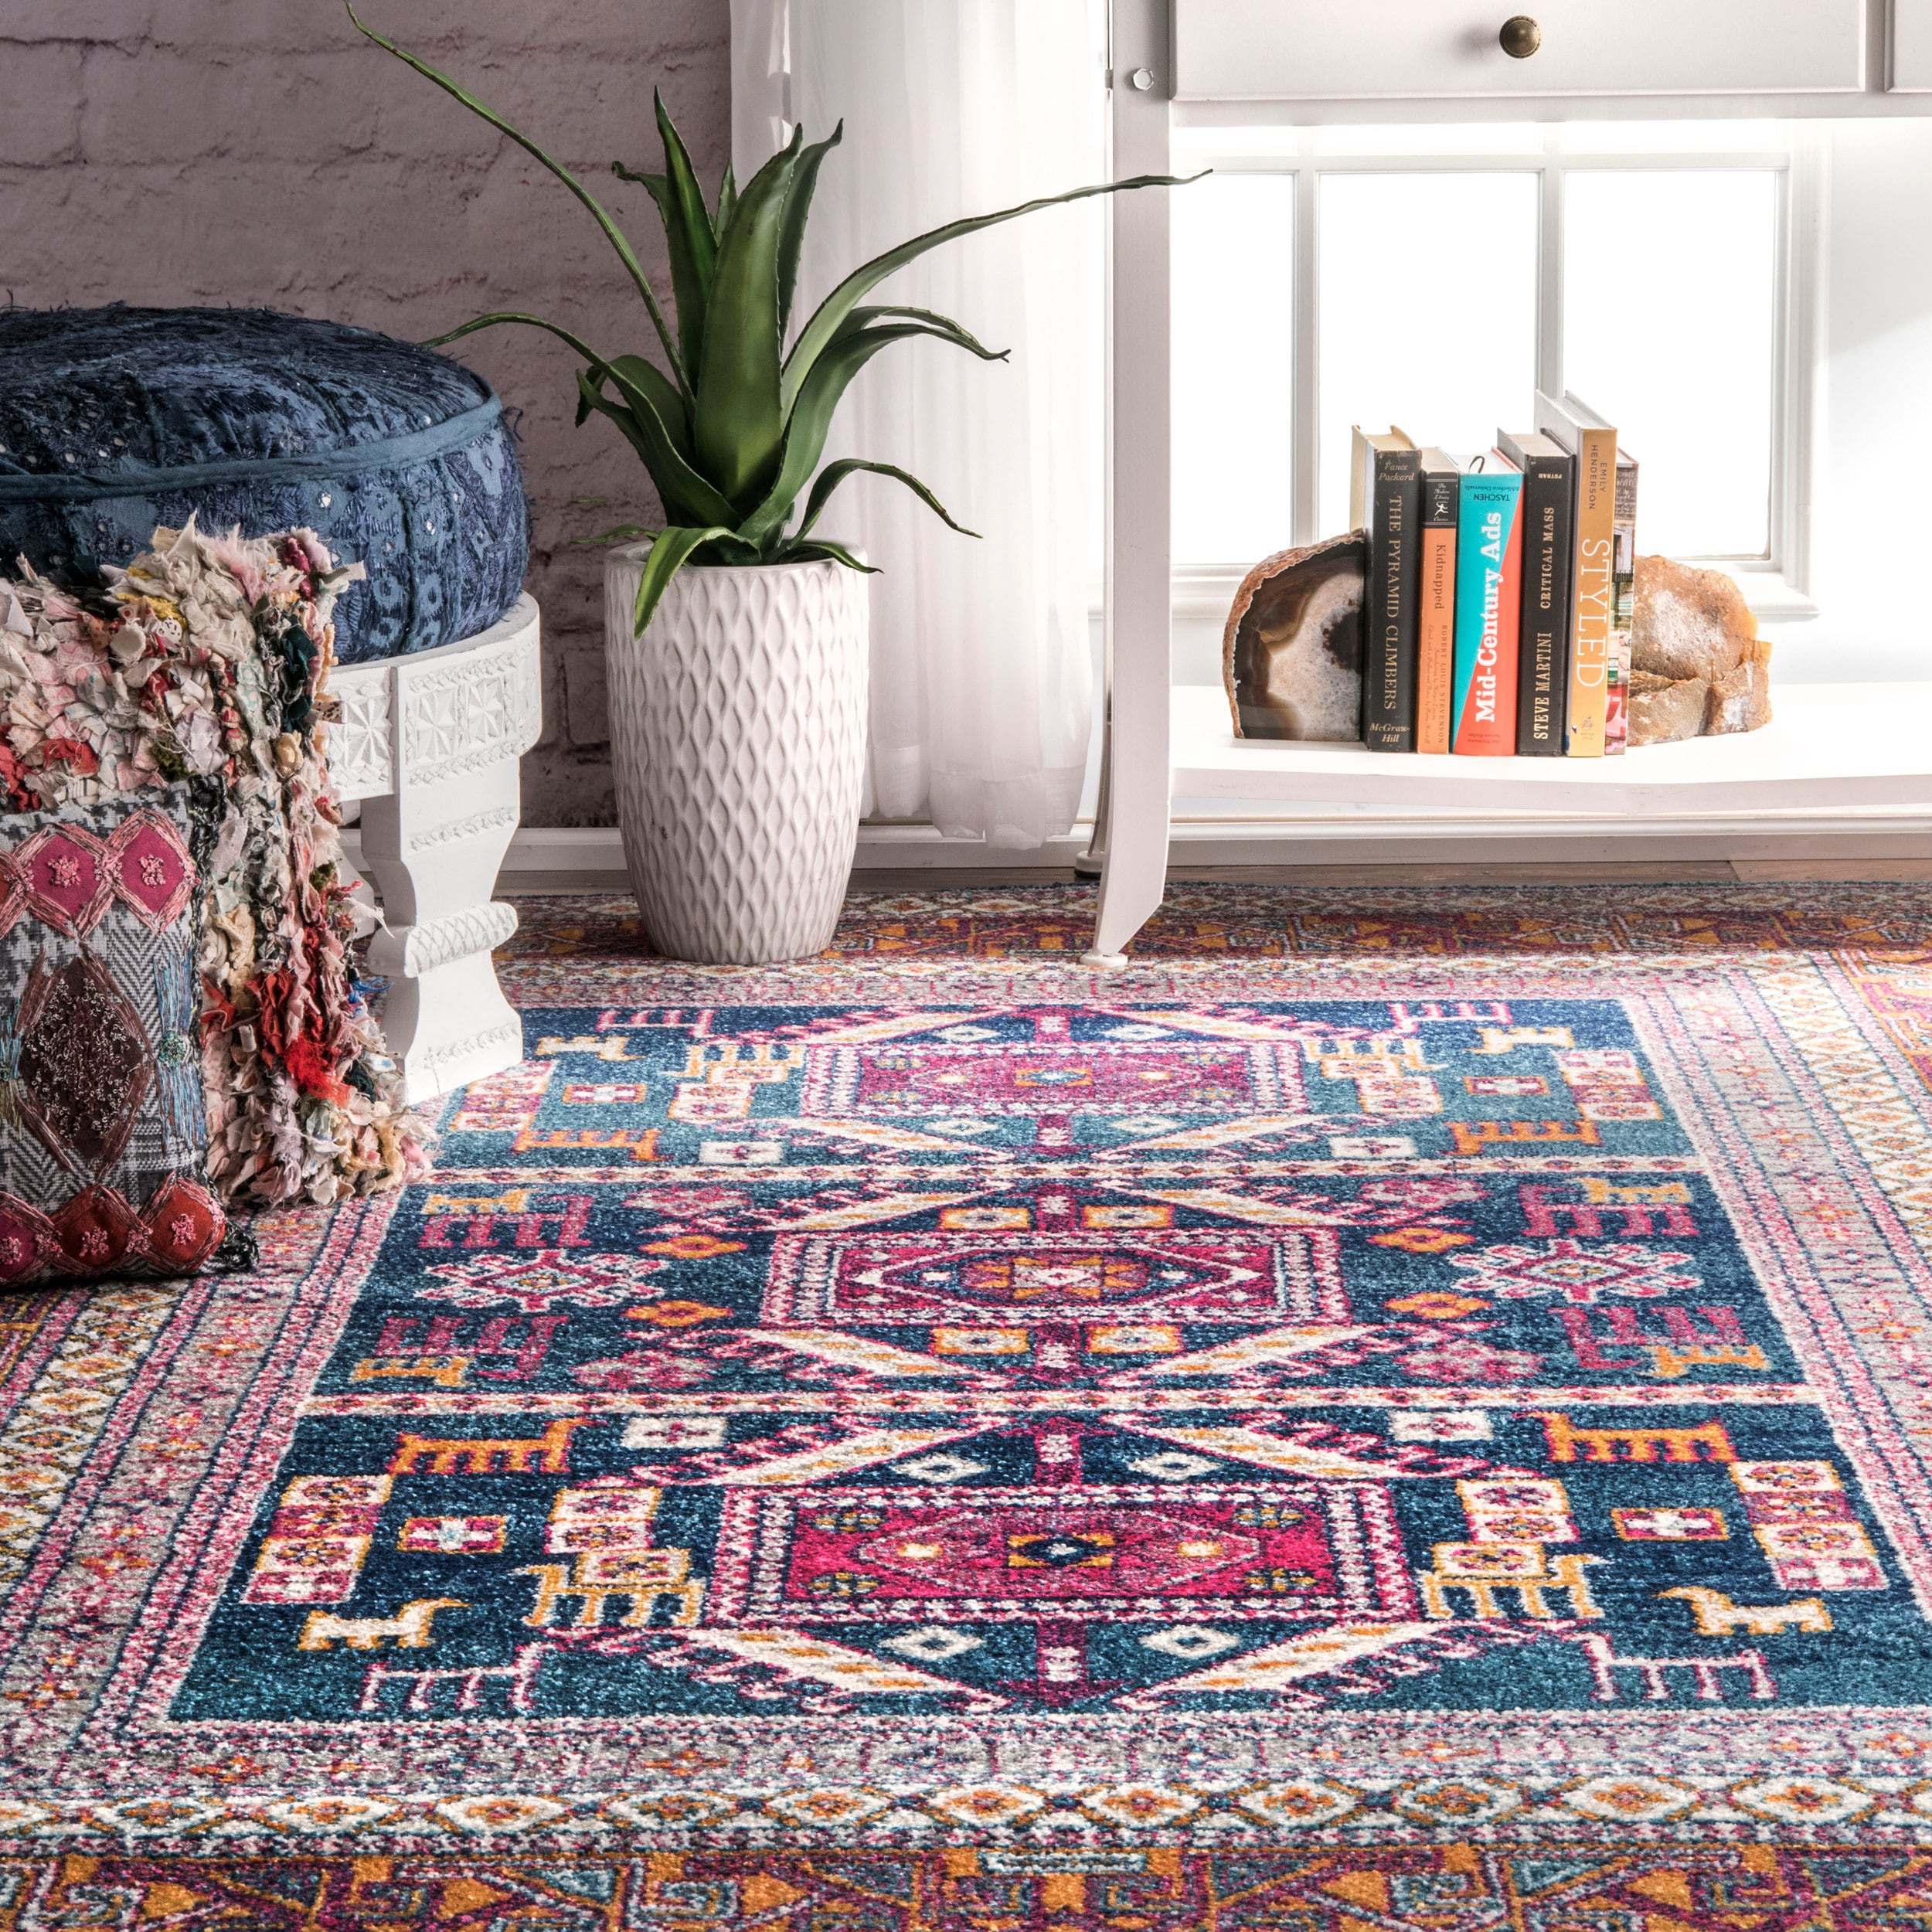 under rug white also bone is sometimes and reviews evo art sku whi the following round moderne louvre listed manufacturer bohemian numbers network